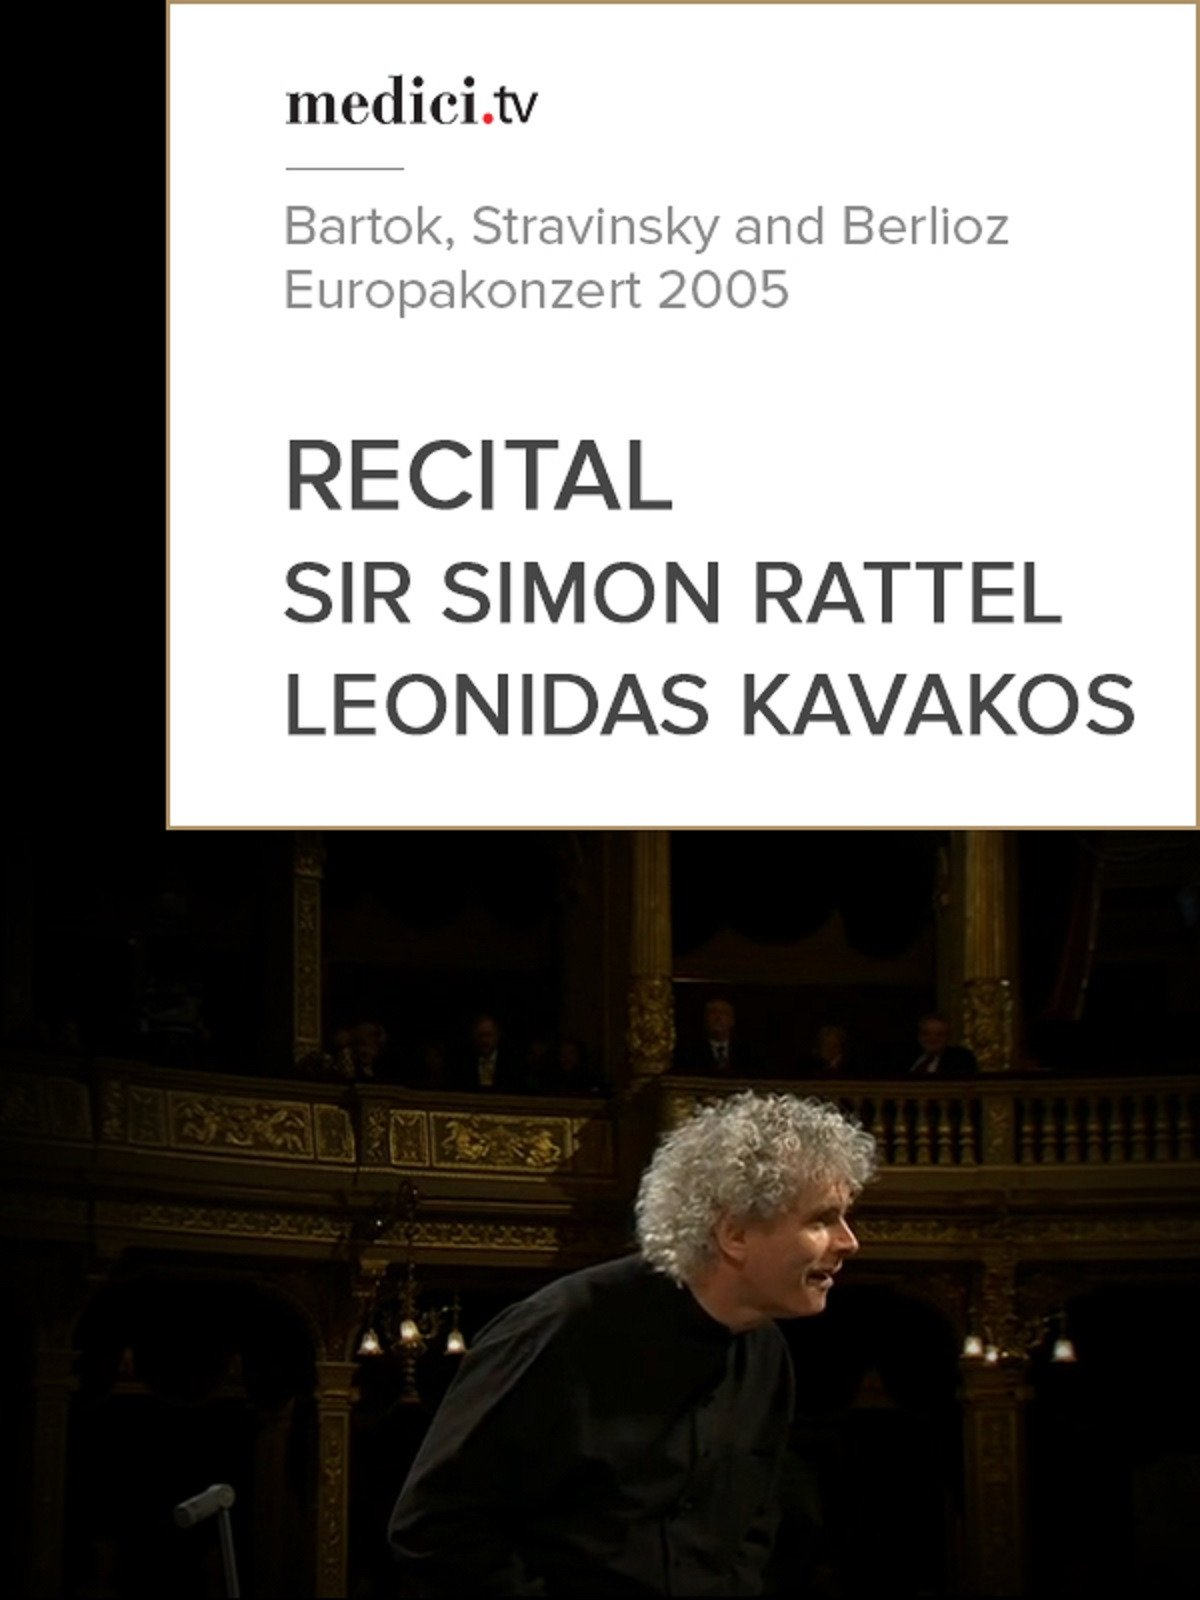 Sir Simon Rattel and Leonidas Kavakos Recital